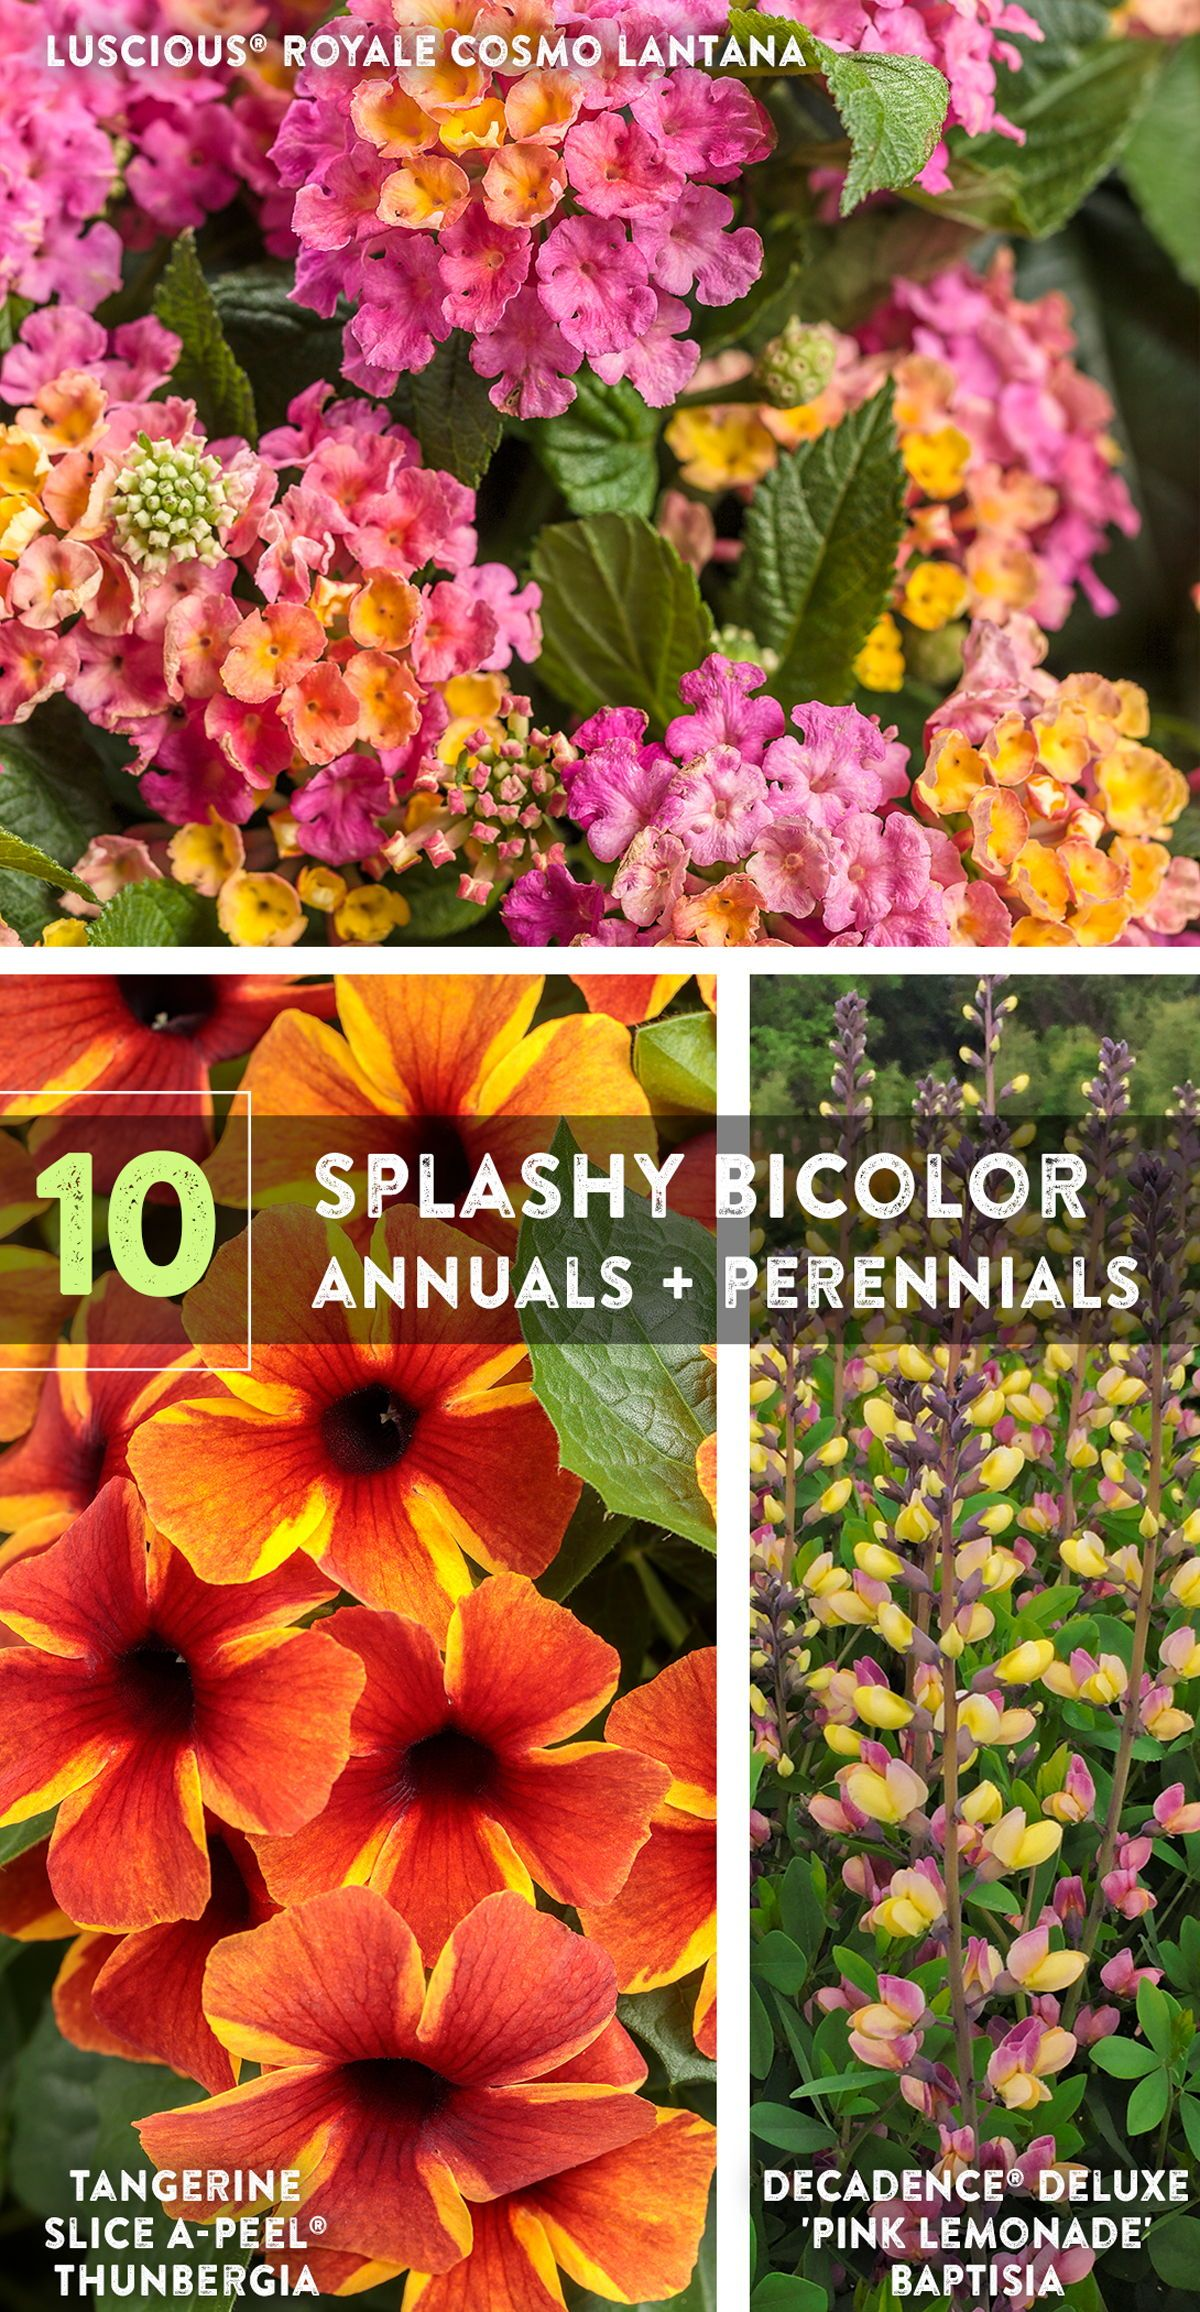 Bicolor Blooms Come In A Myriad Of Types And In Almost Every Color